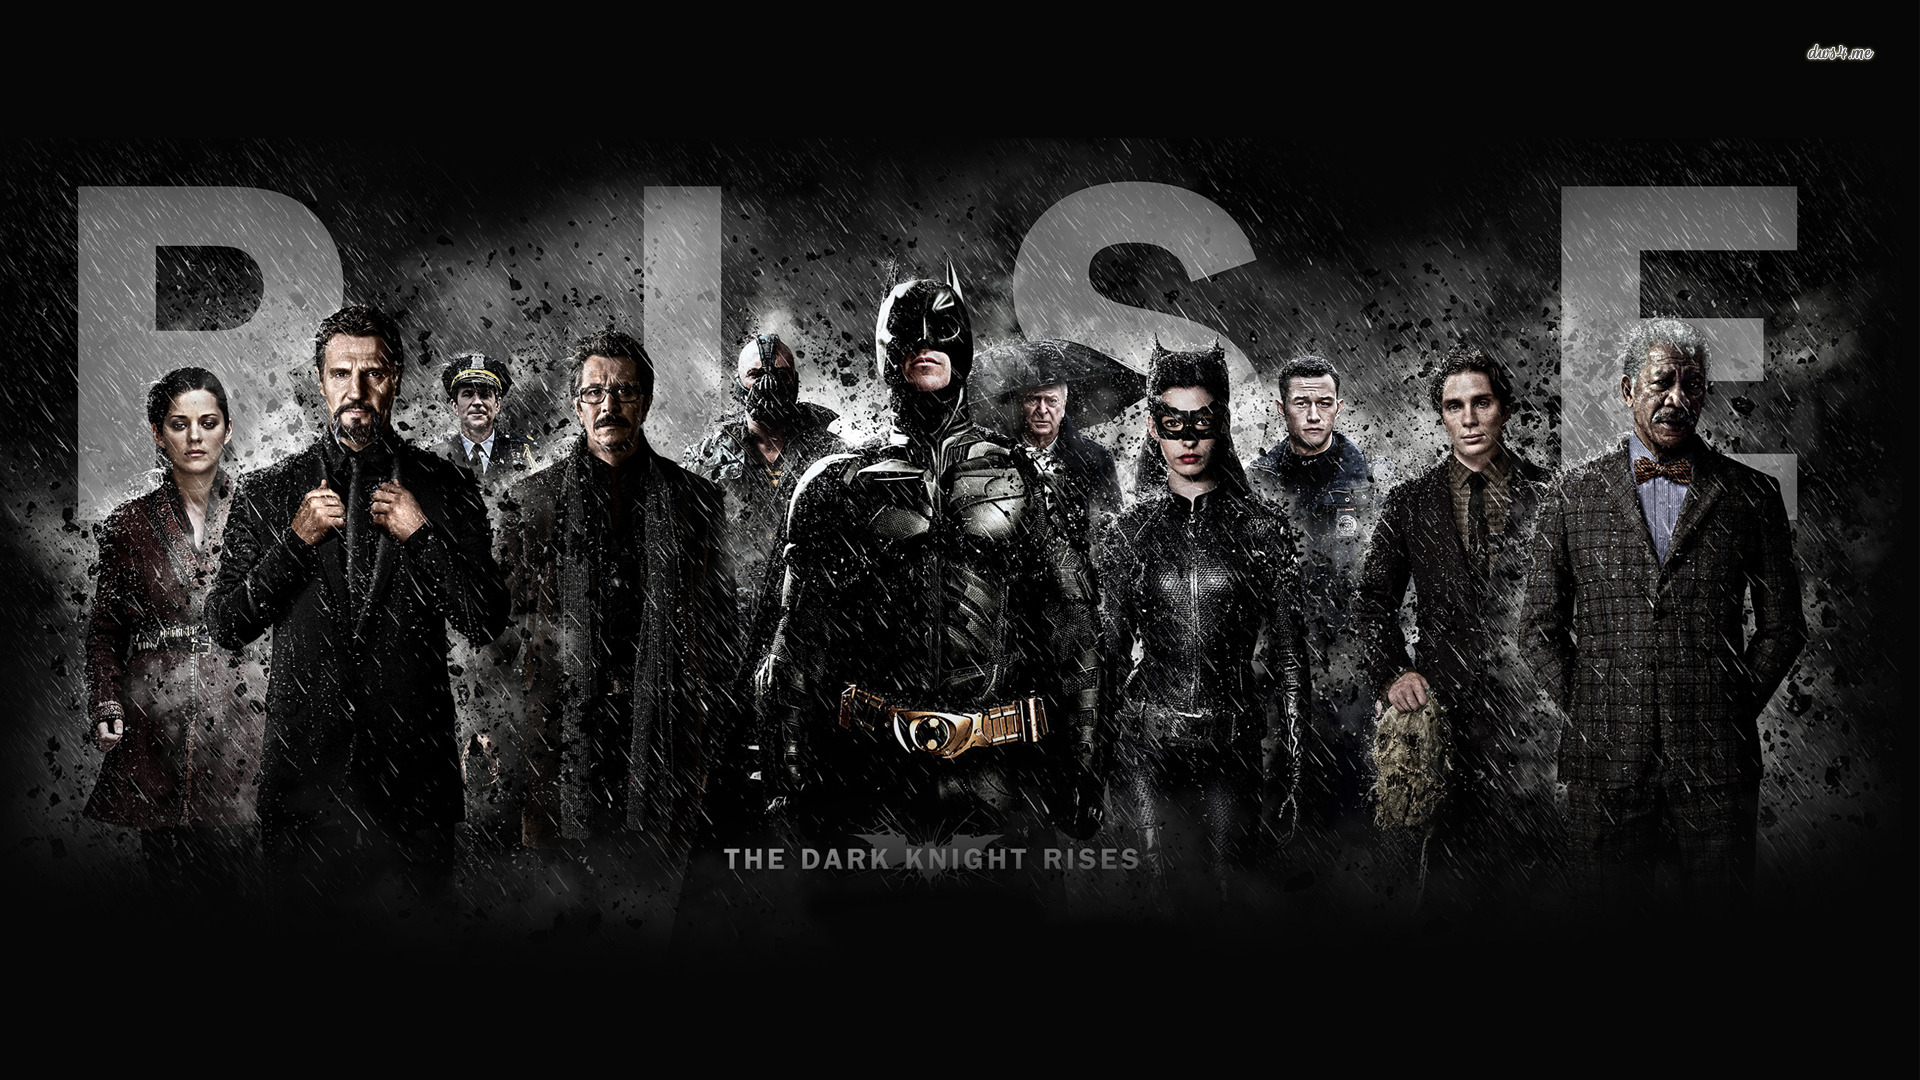 4269-the-dark-knight-rises-1920x1080-movie-wallpaper